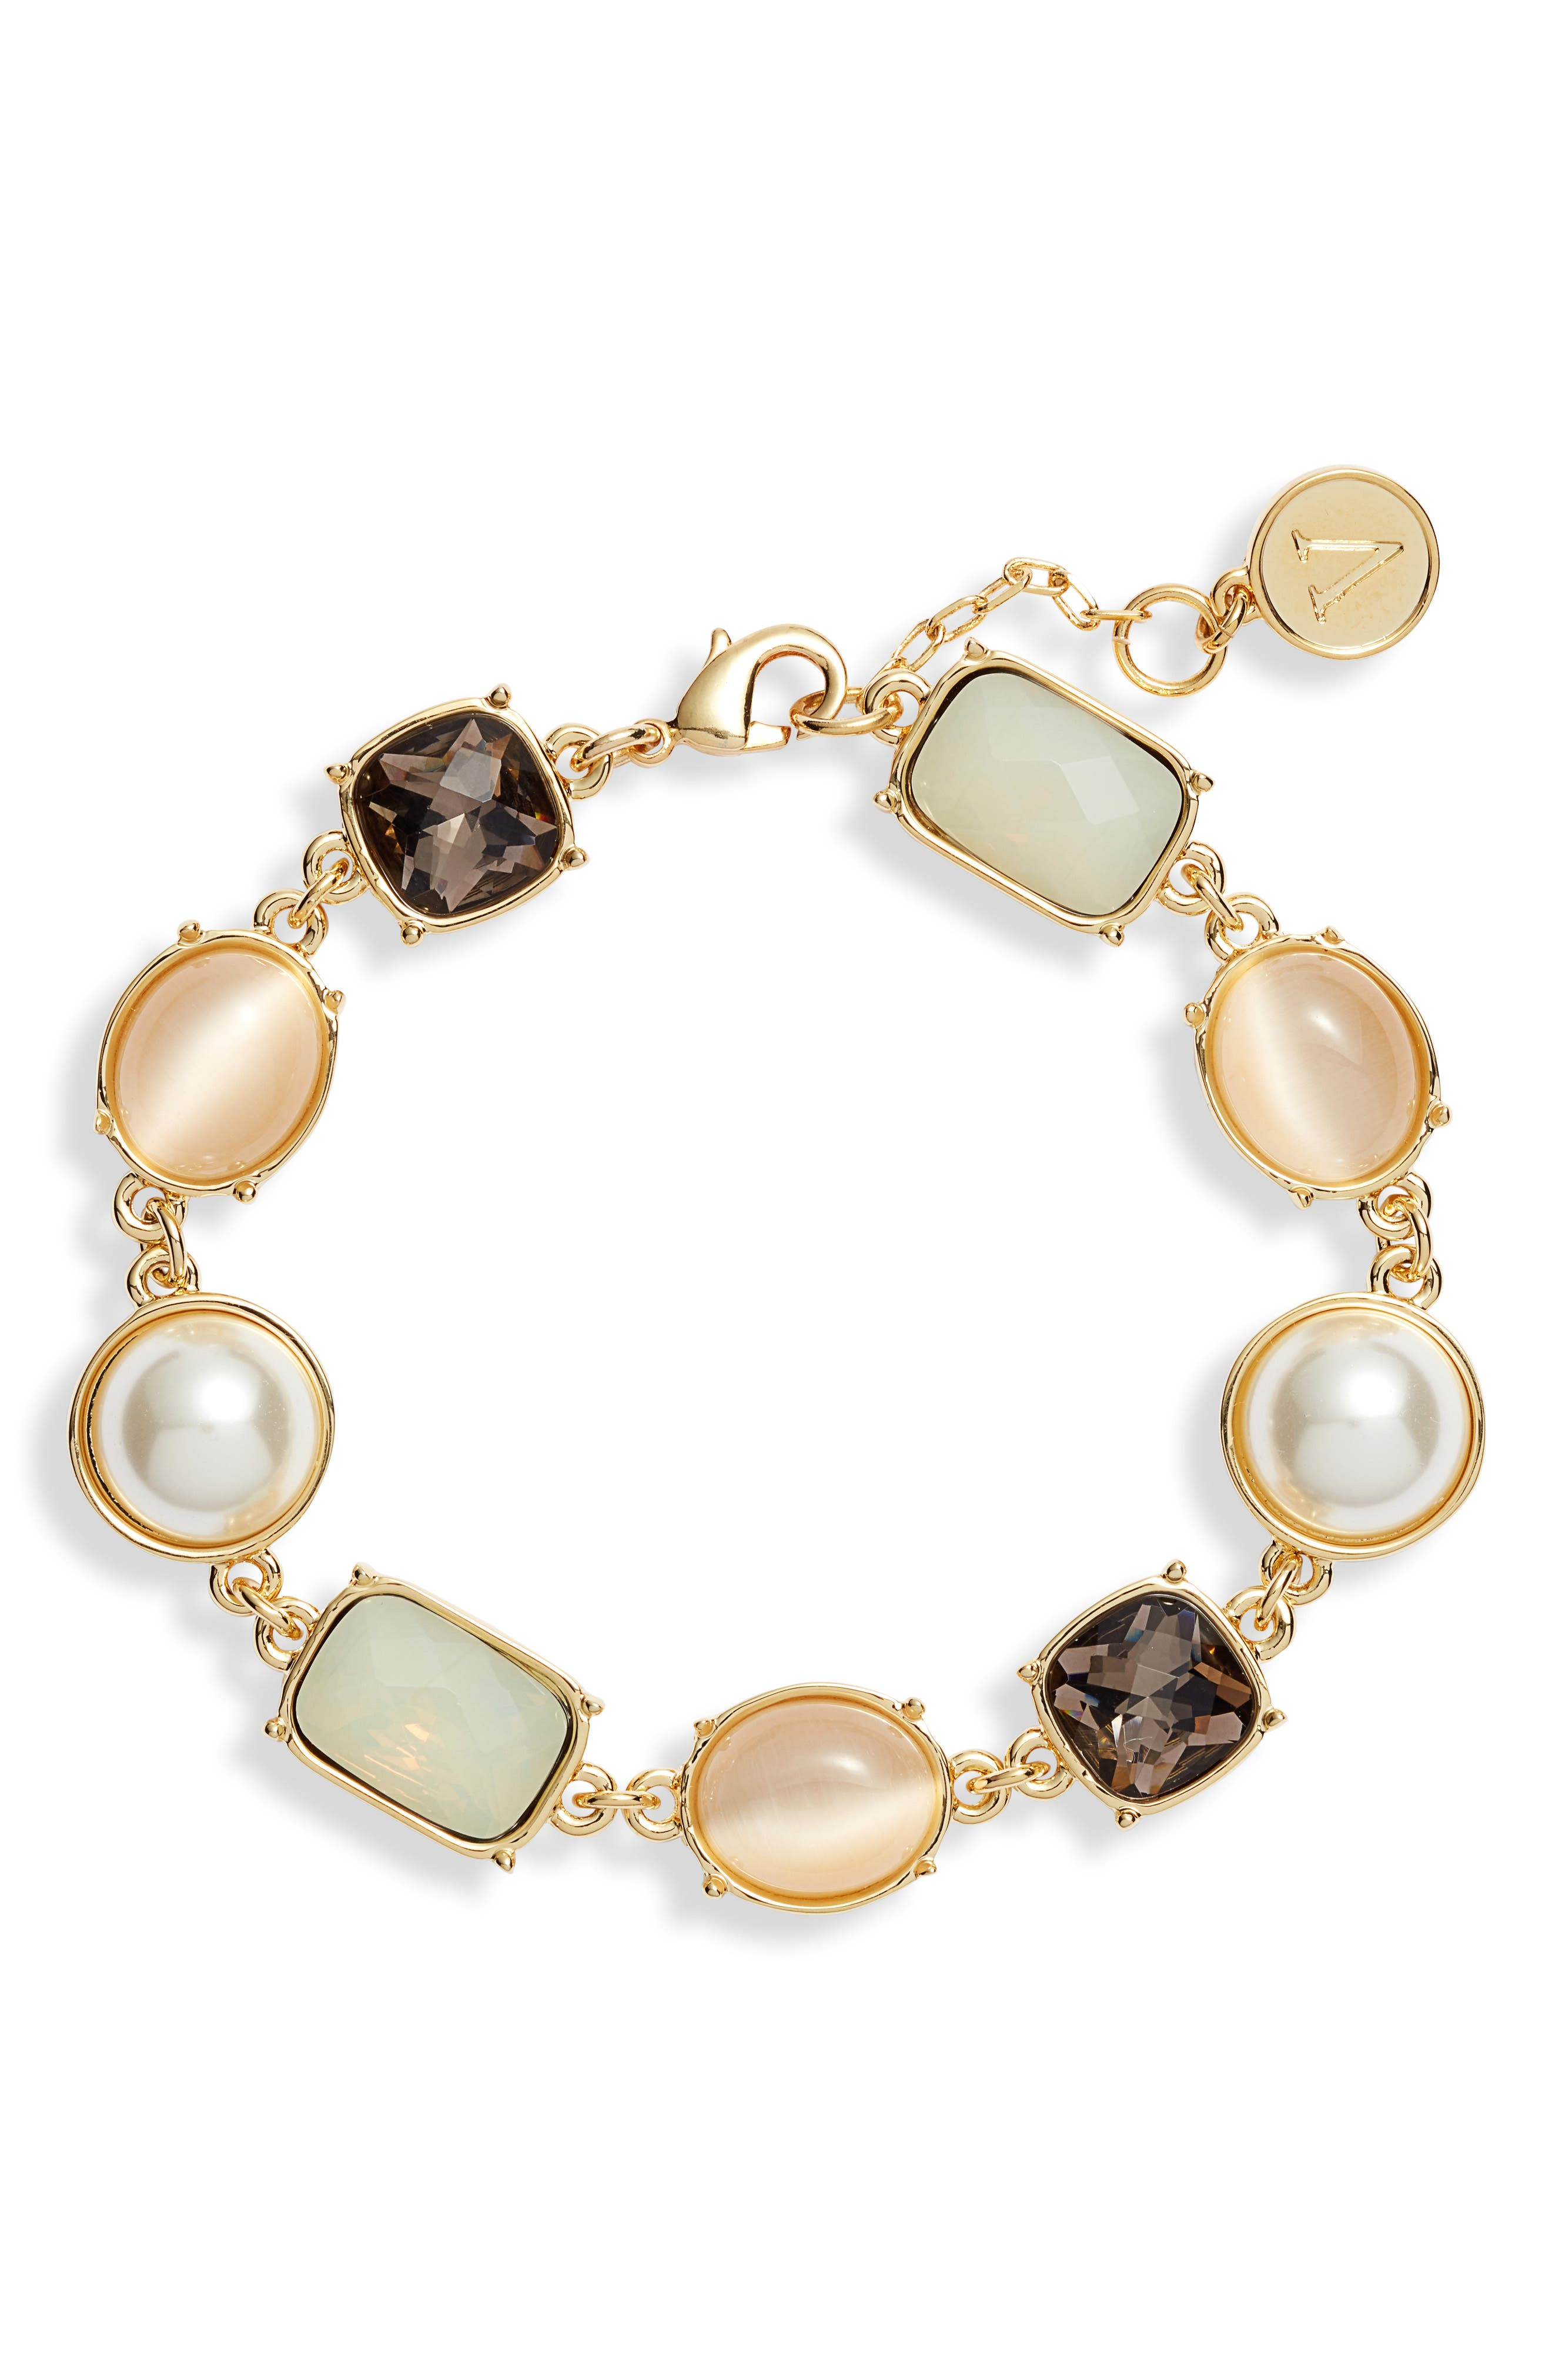 Stone Link Bracelet,                             Main thumbnail 1, color,                             GOLD/ PEARL/ CORAL